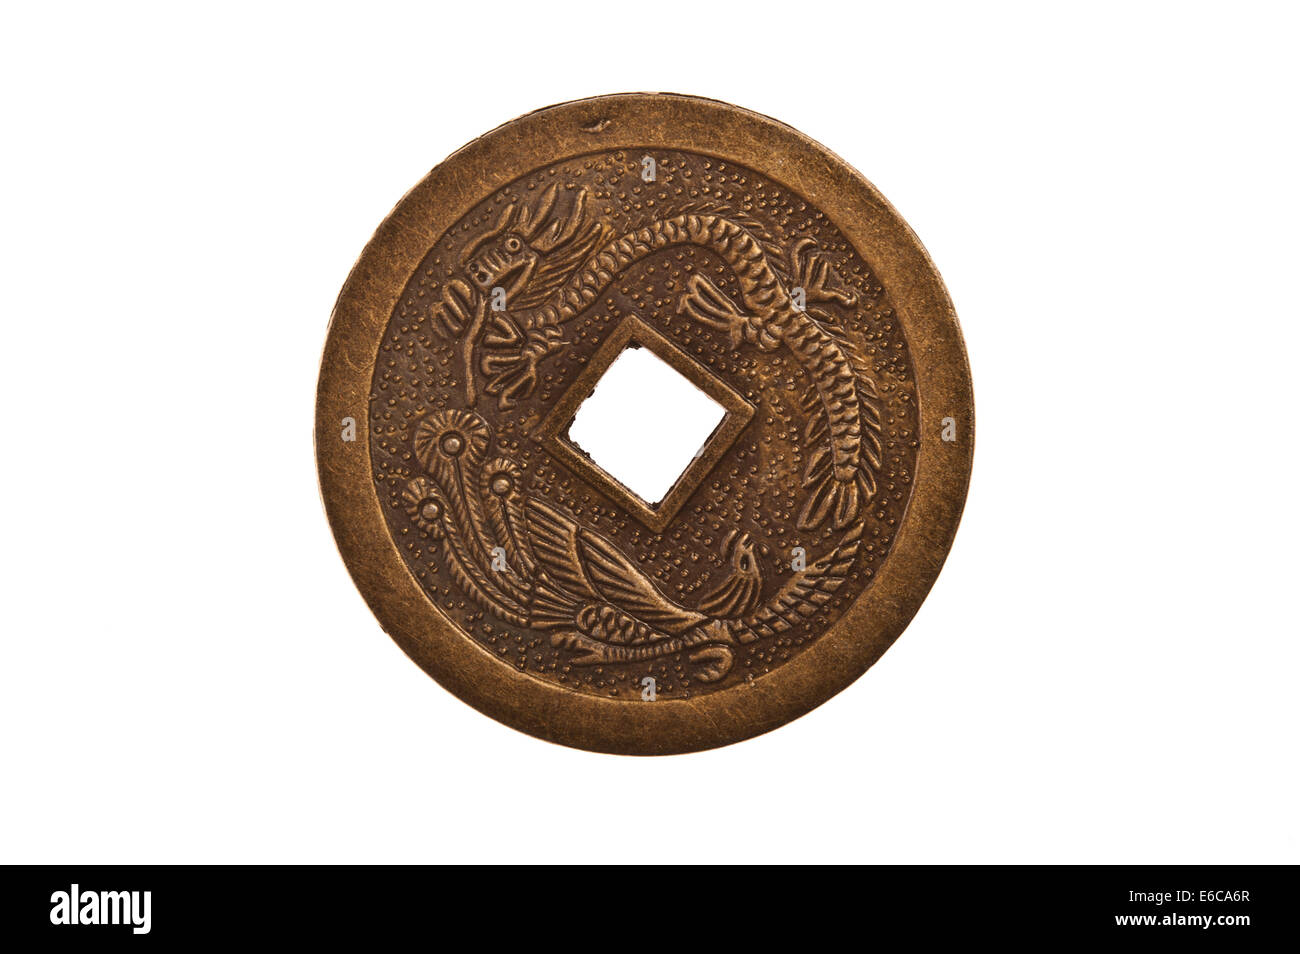 Chinese antique coin - Stock Image